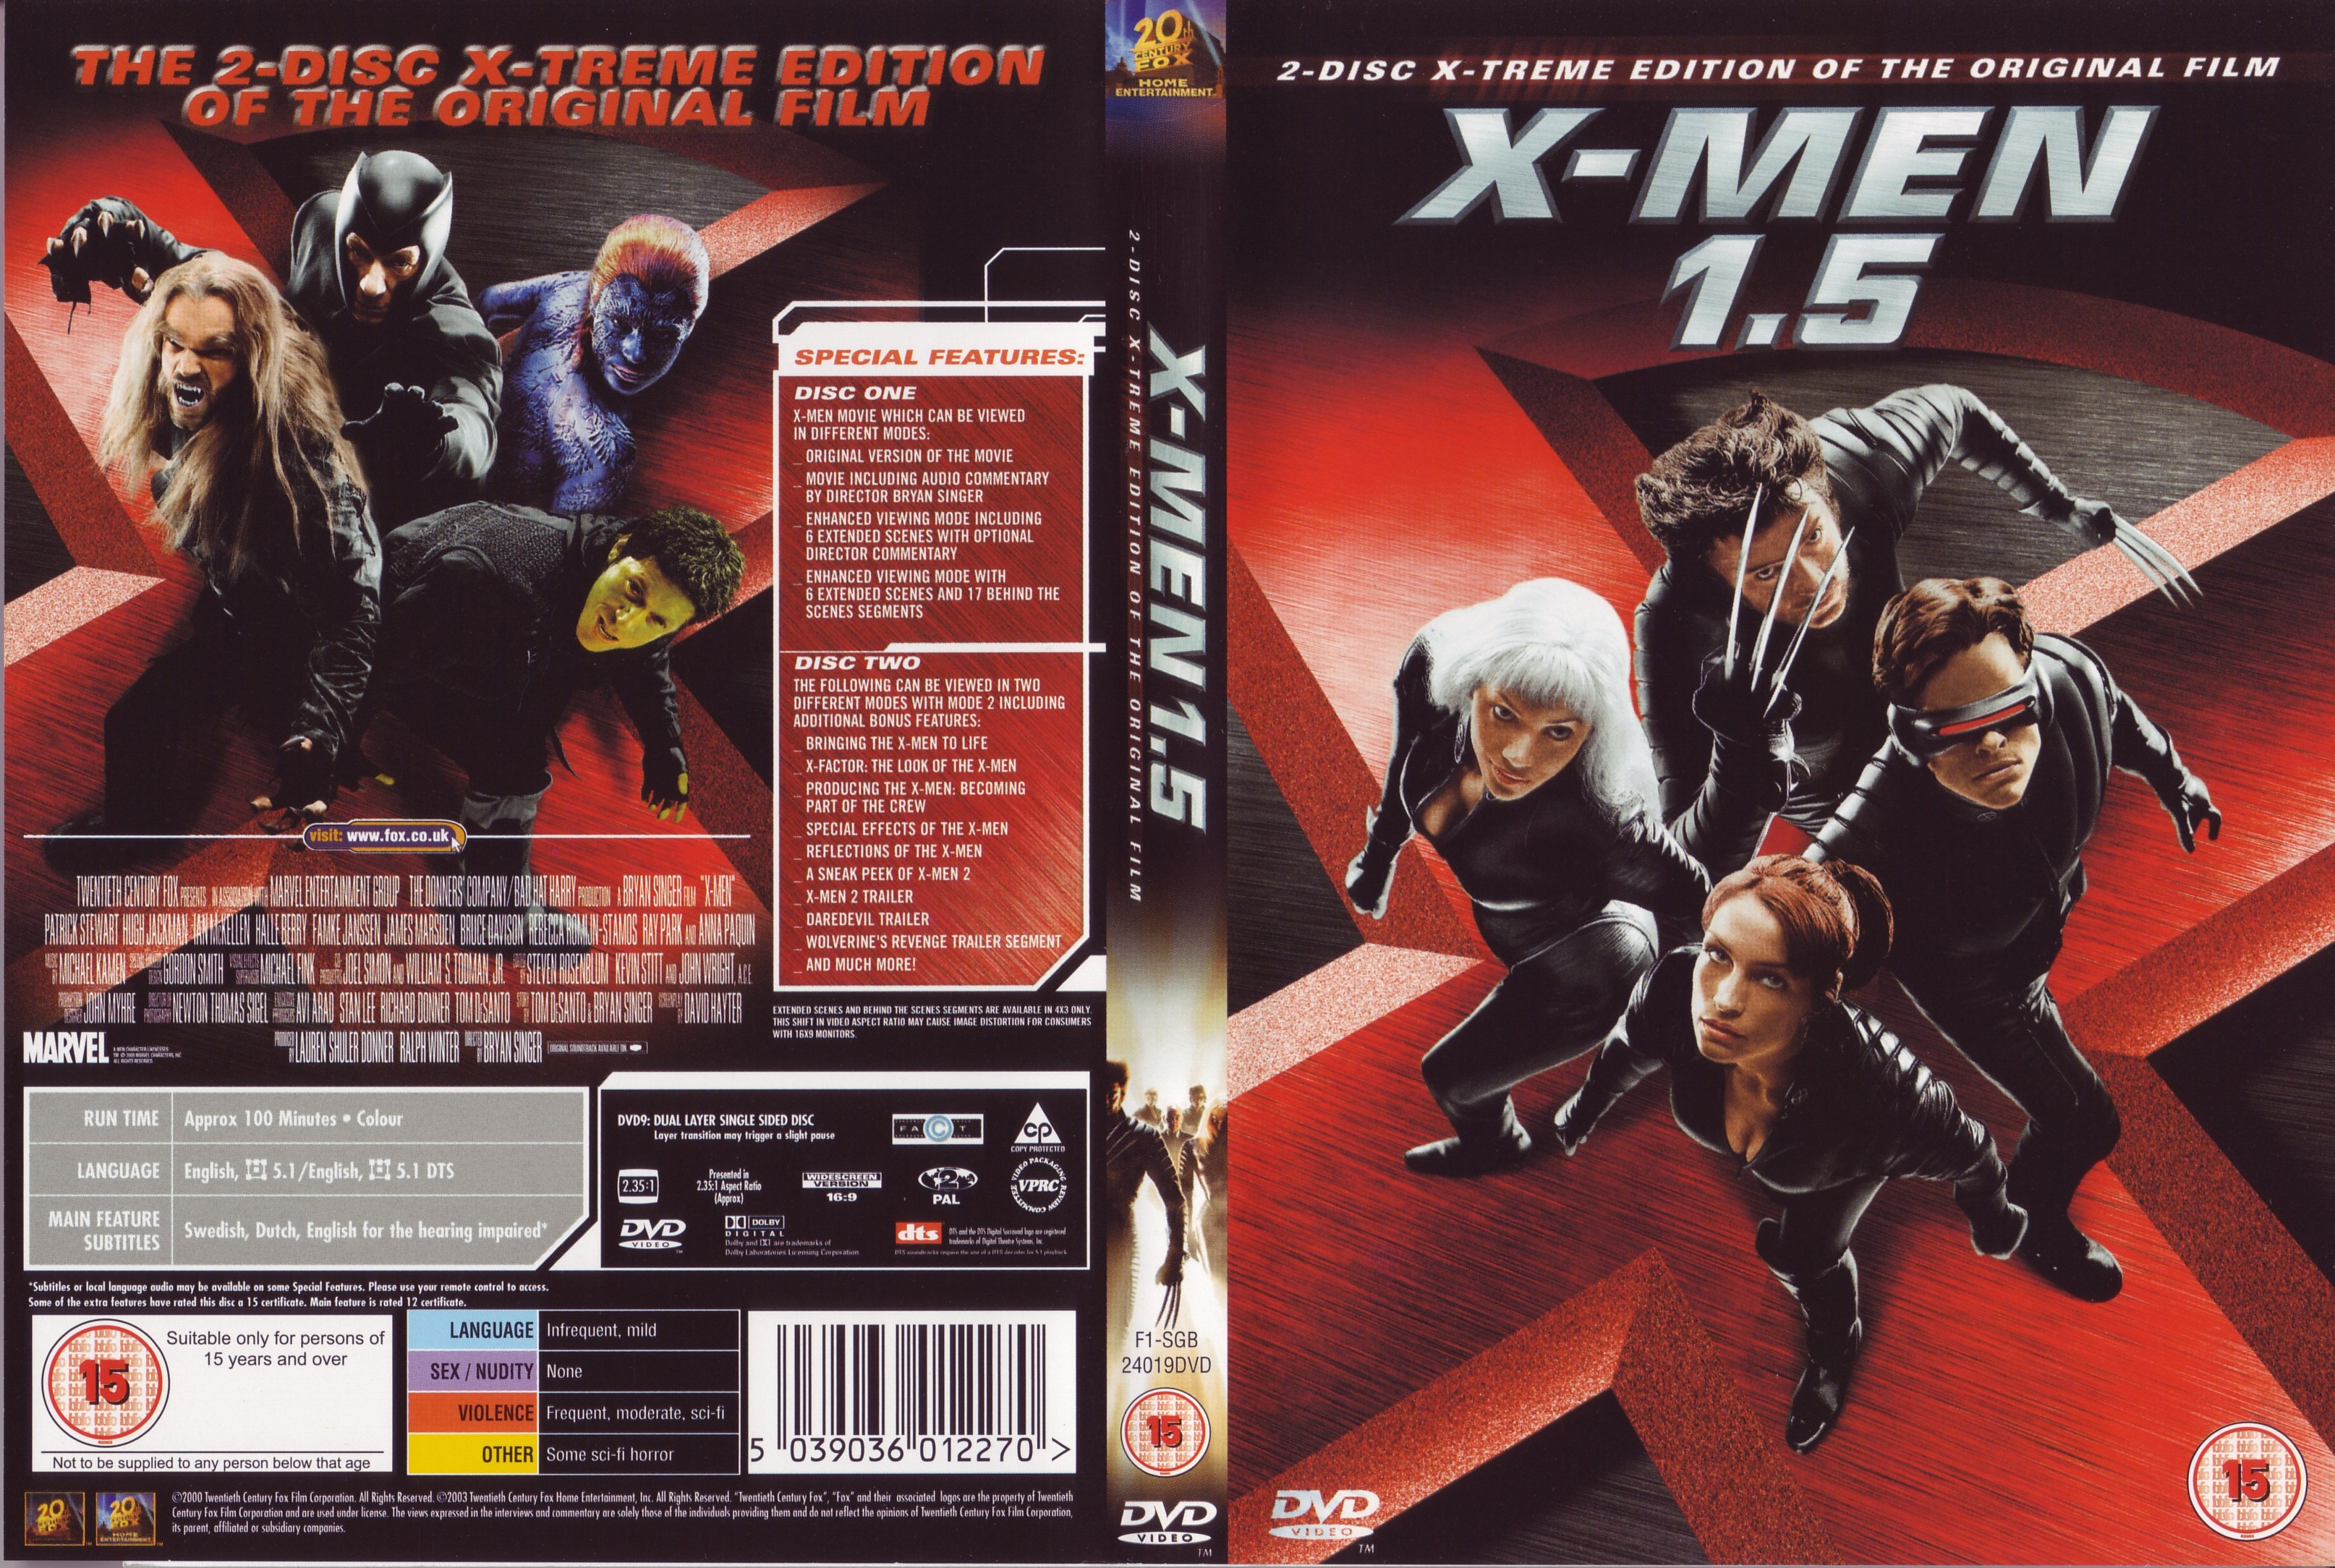 X Men Dvd Cover: COVERS.BOX.SK ::: X Men 1.5